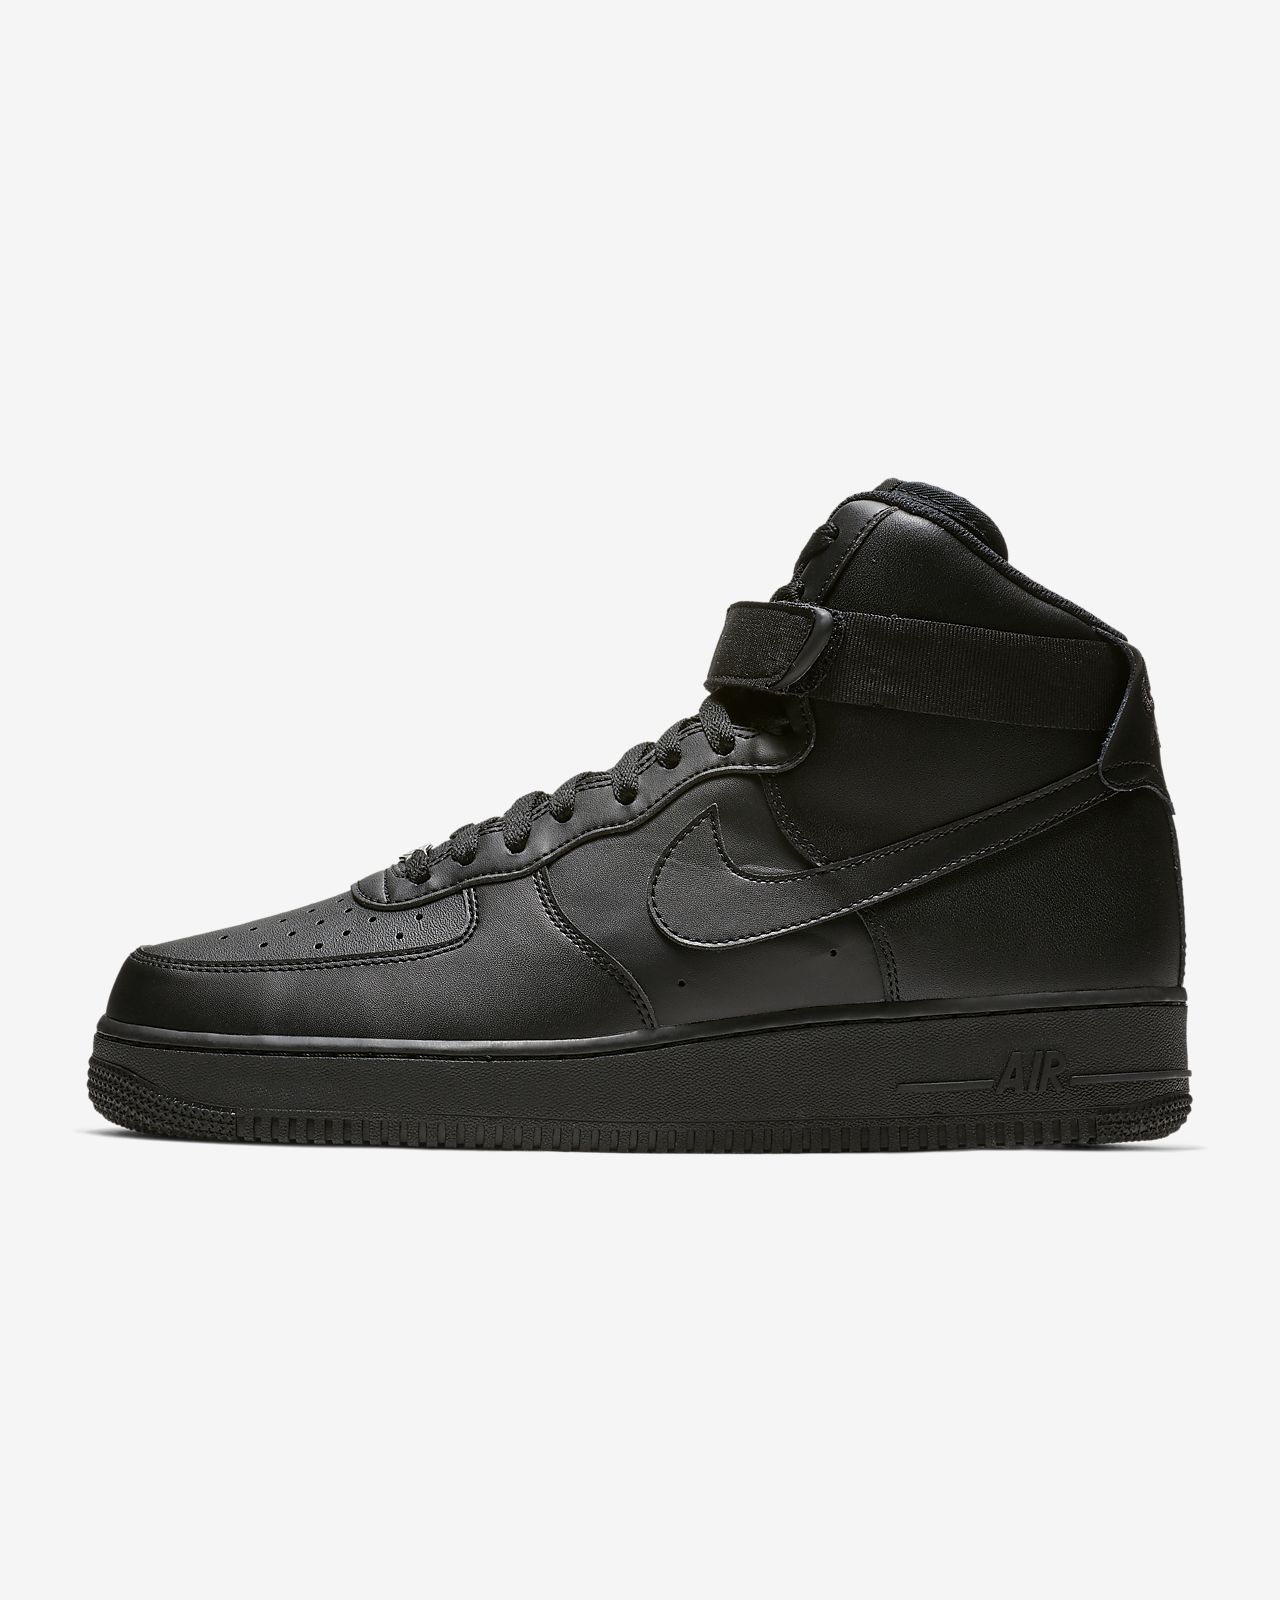 4e2e2016a Nike Air Force 1 High 07 Men's Shoe. Nike.com